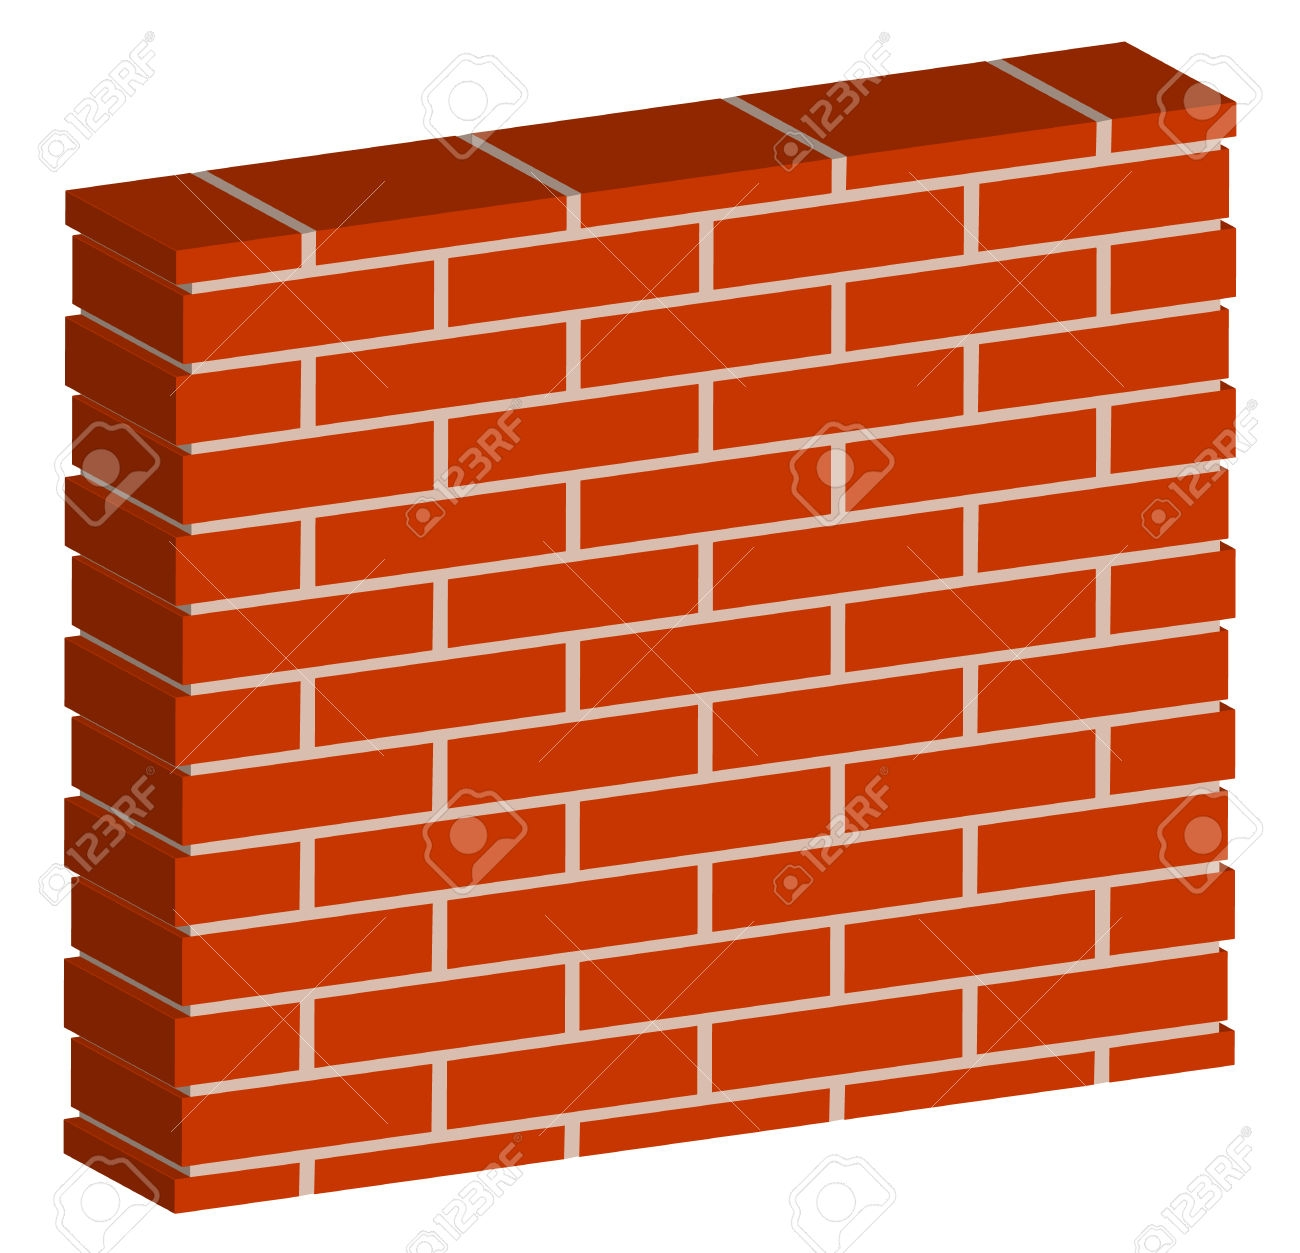 banner library stock Brick building clipart. Wall outdoor lighting landscape.